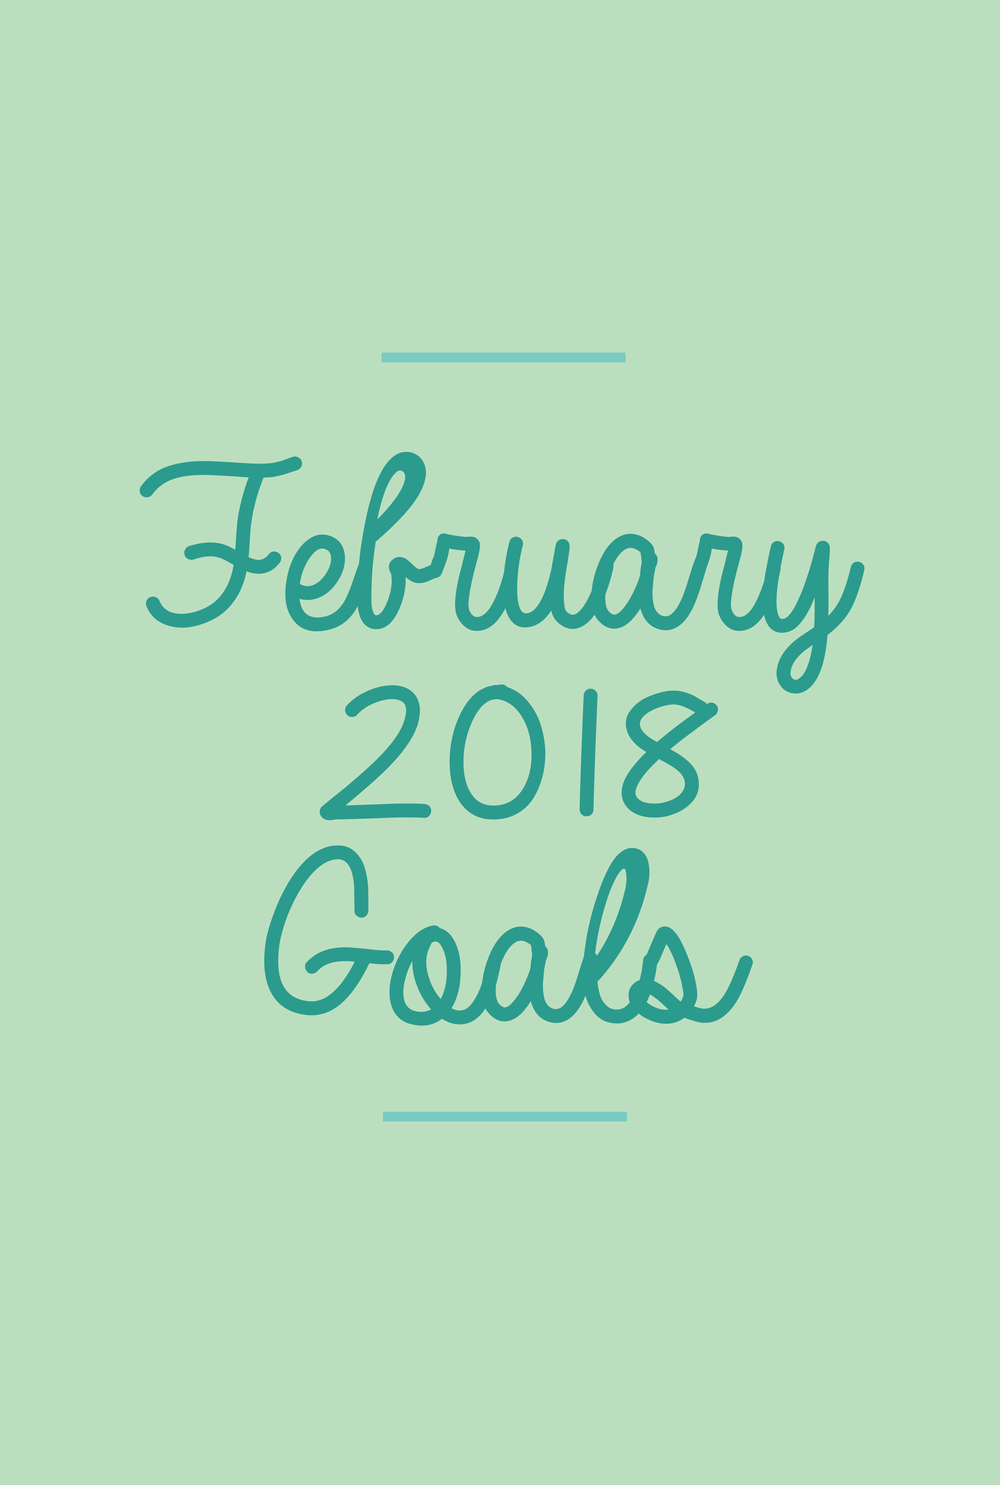 Feb2018.Goals_blog-15.png